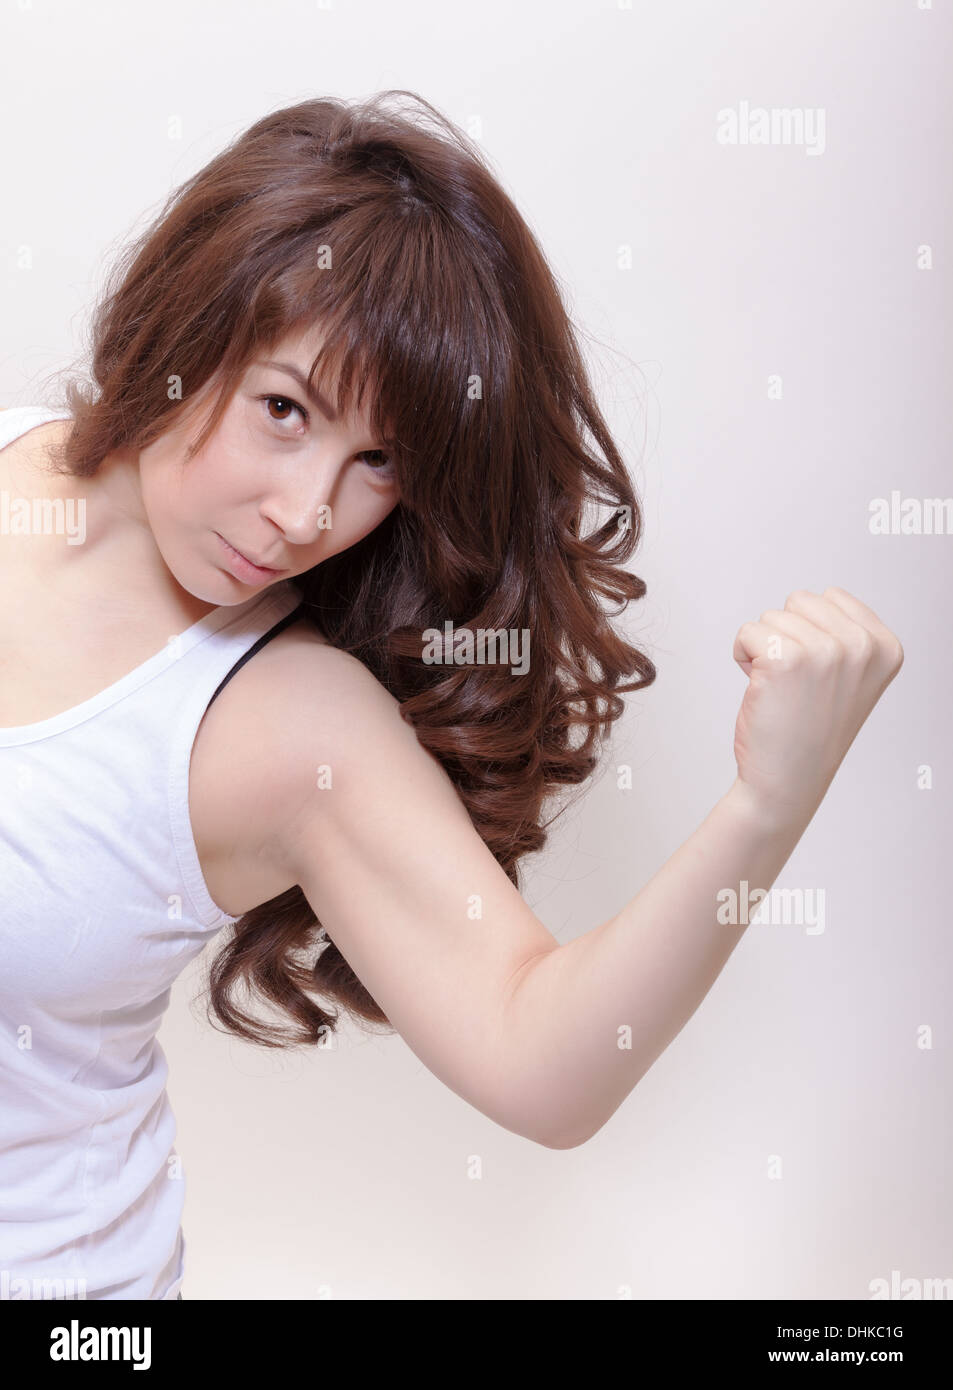 Attractive woman making a fist Stock Photo